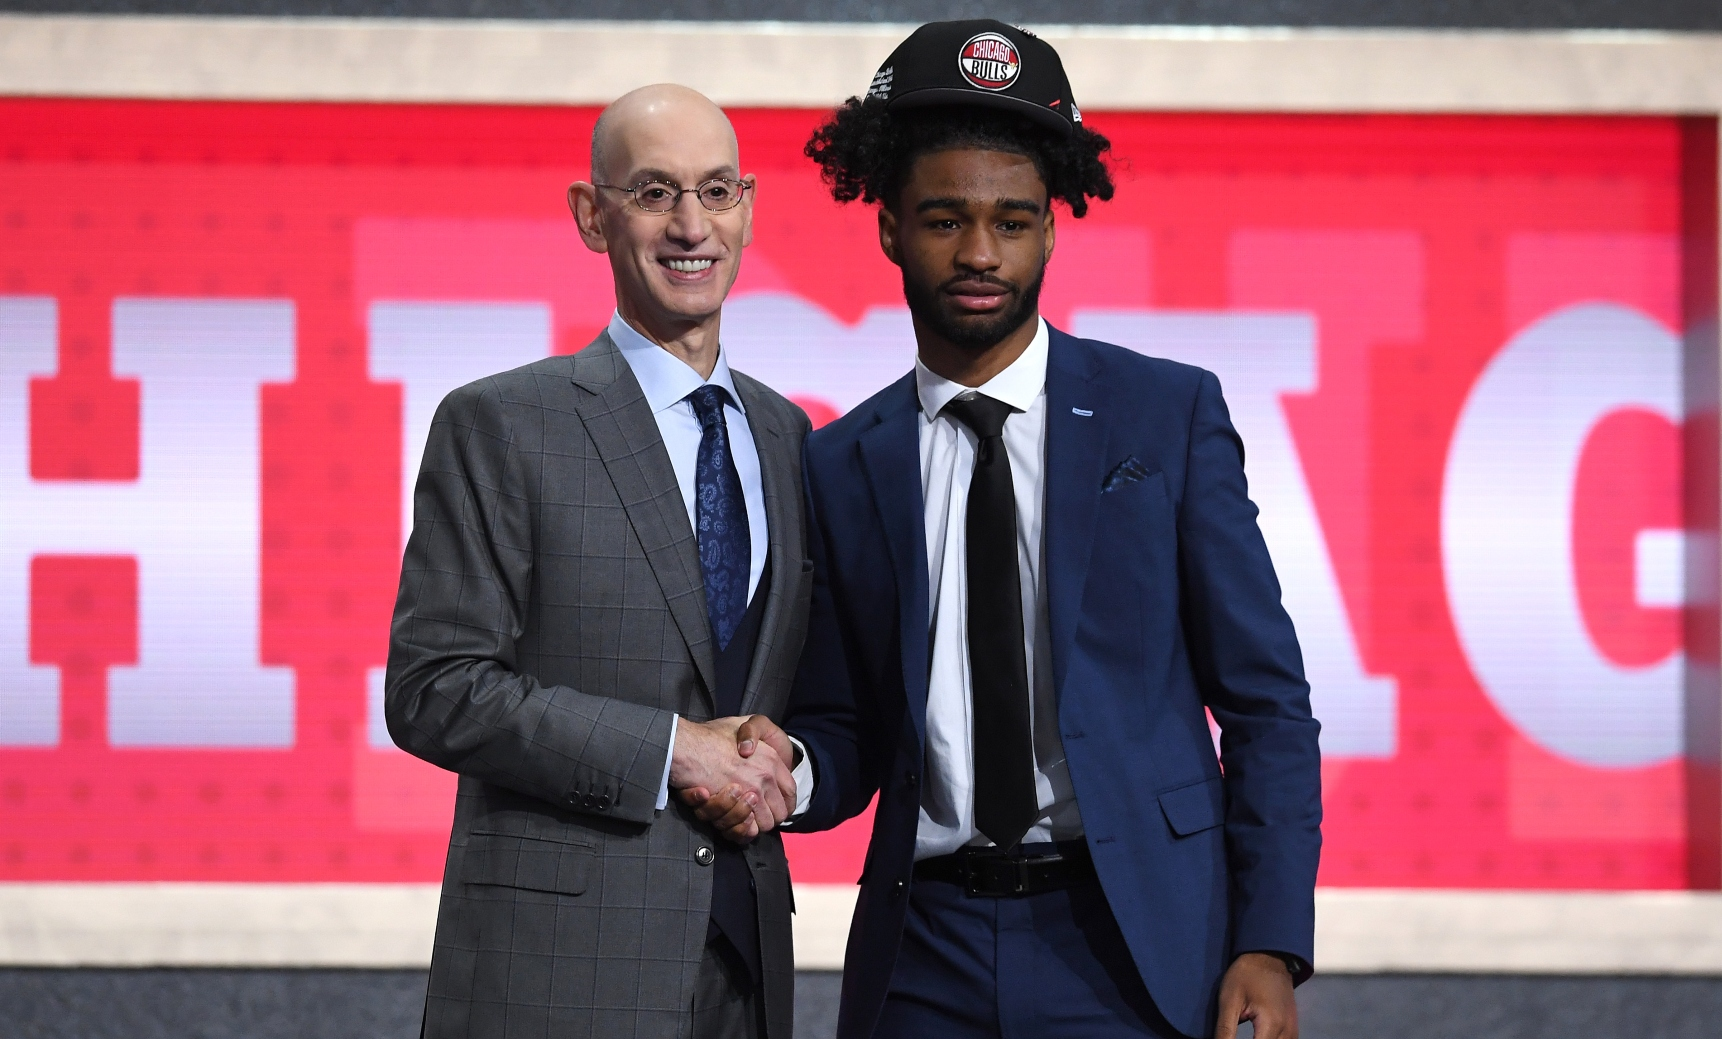 Bernstein: Bulls Make Good Call With Coby White